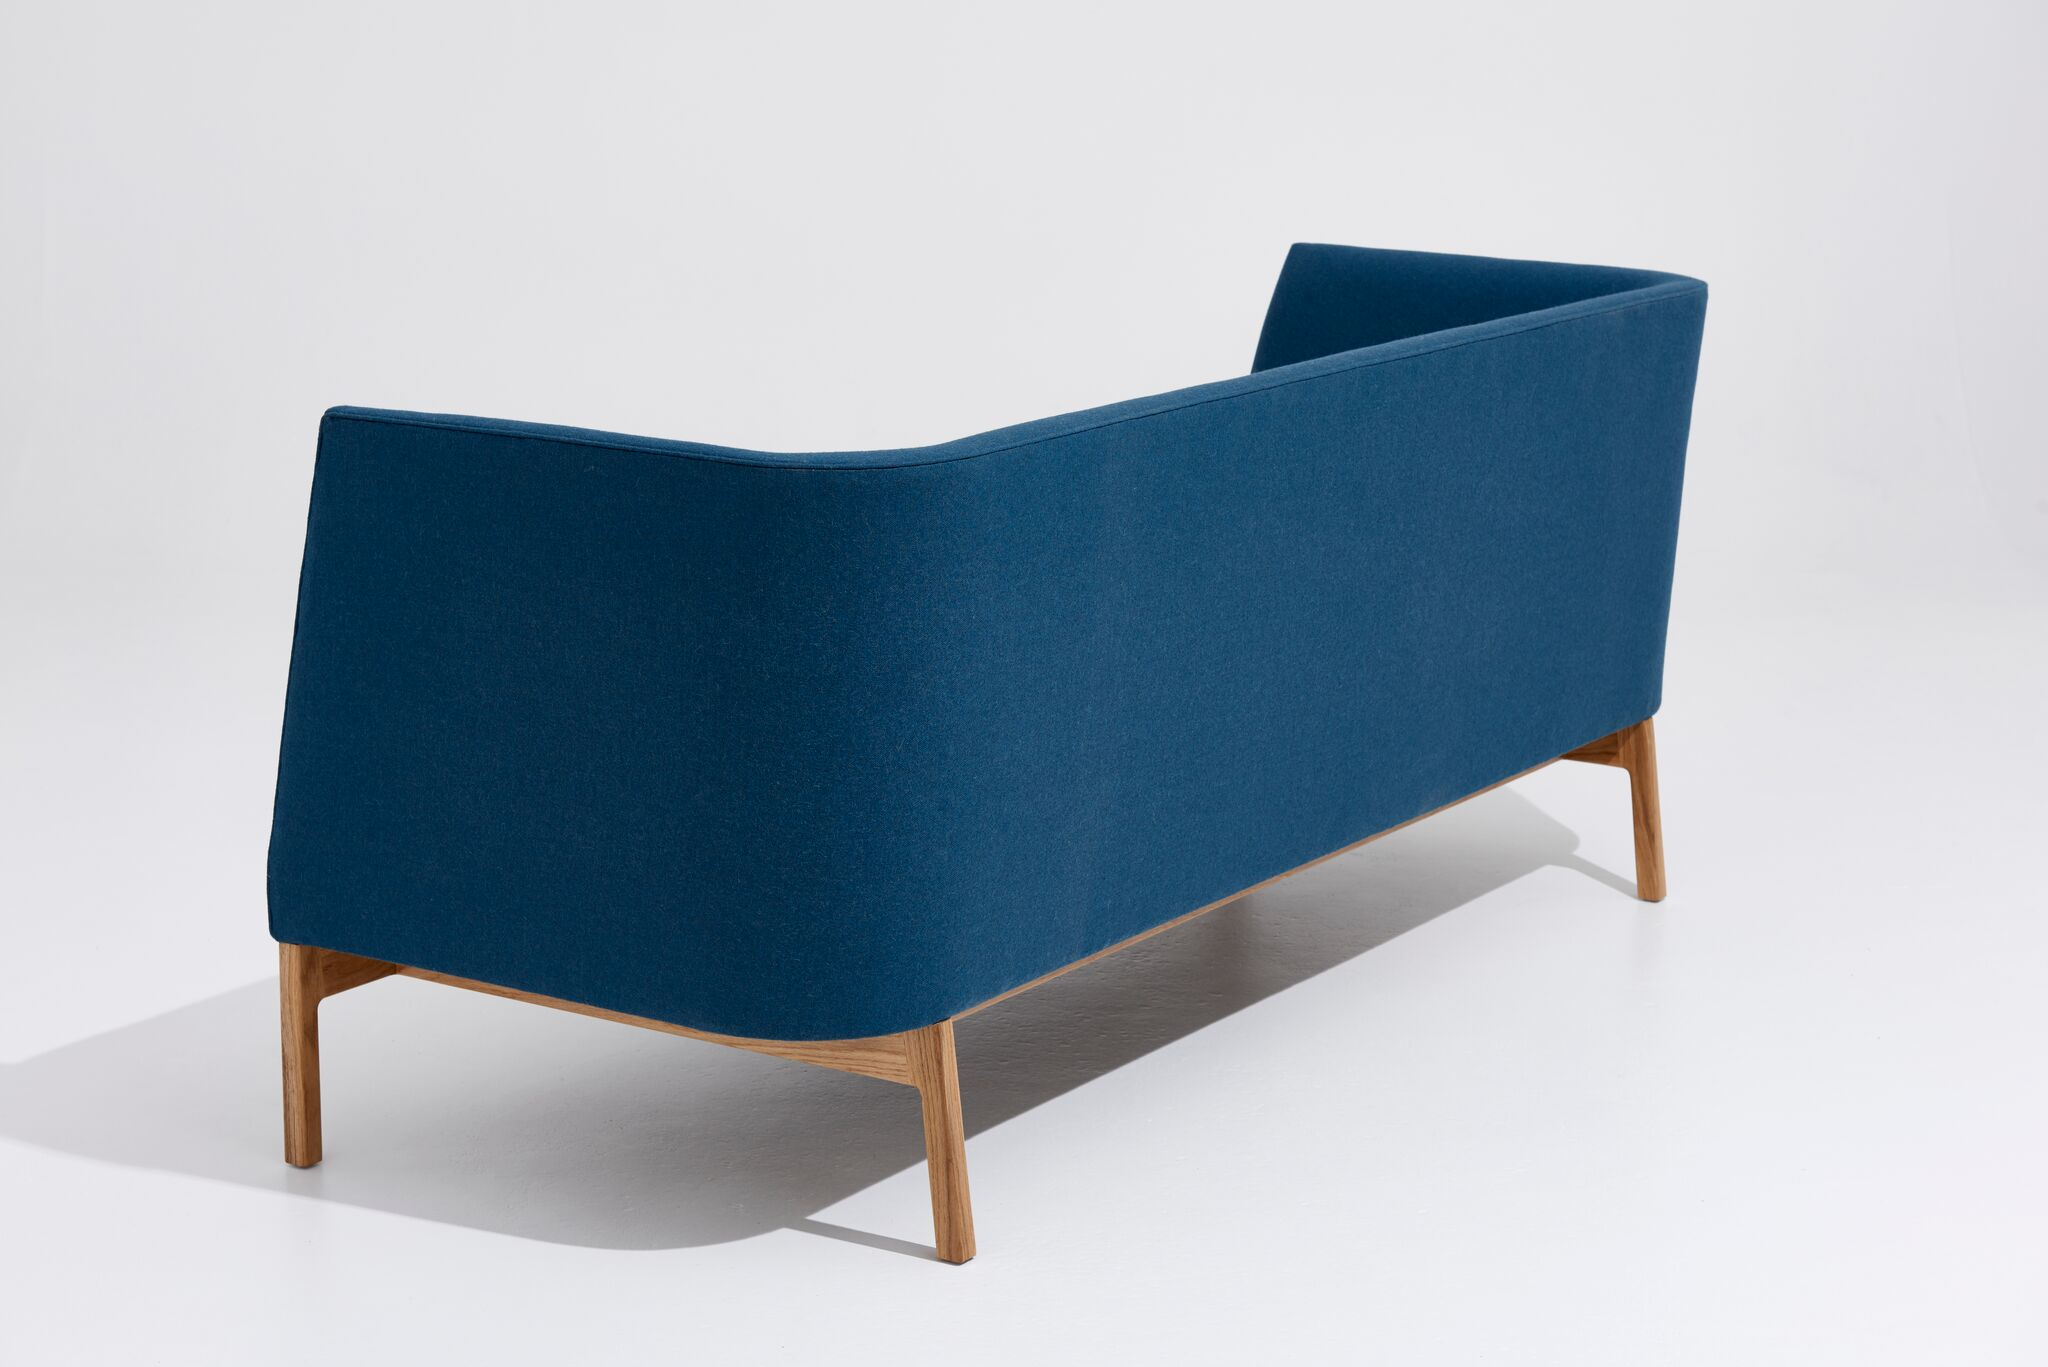 The back of the sofa is comprised of a visually appealing curved form.